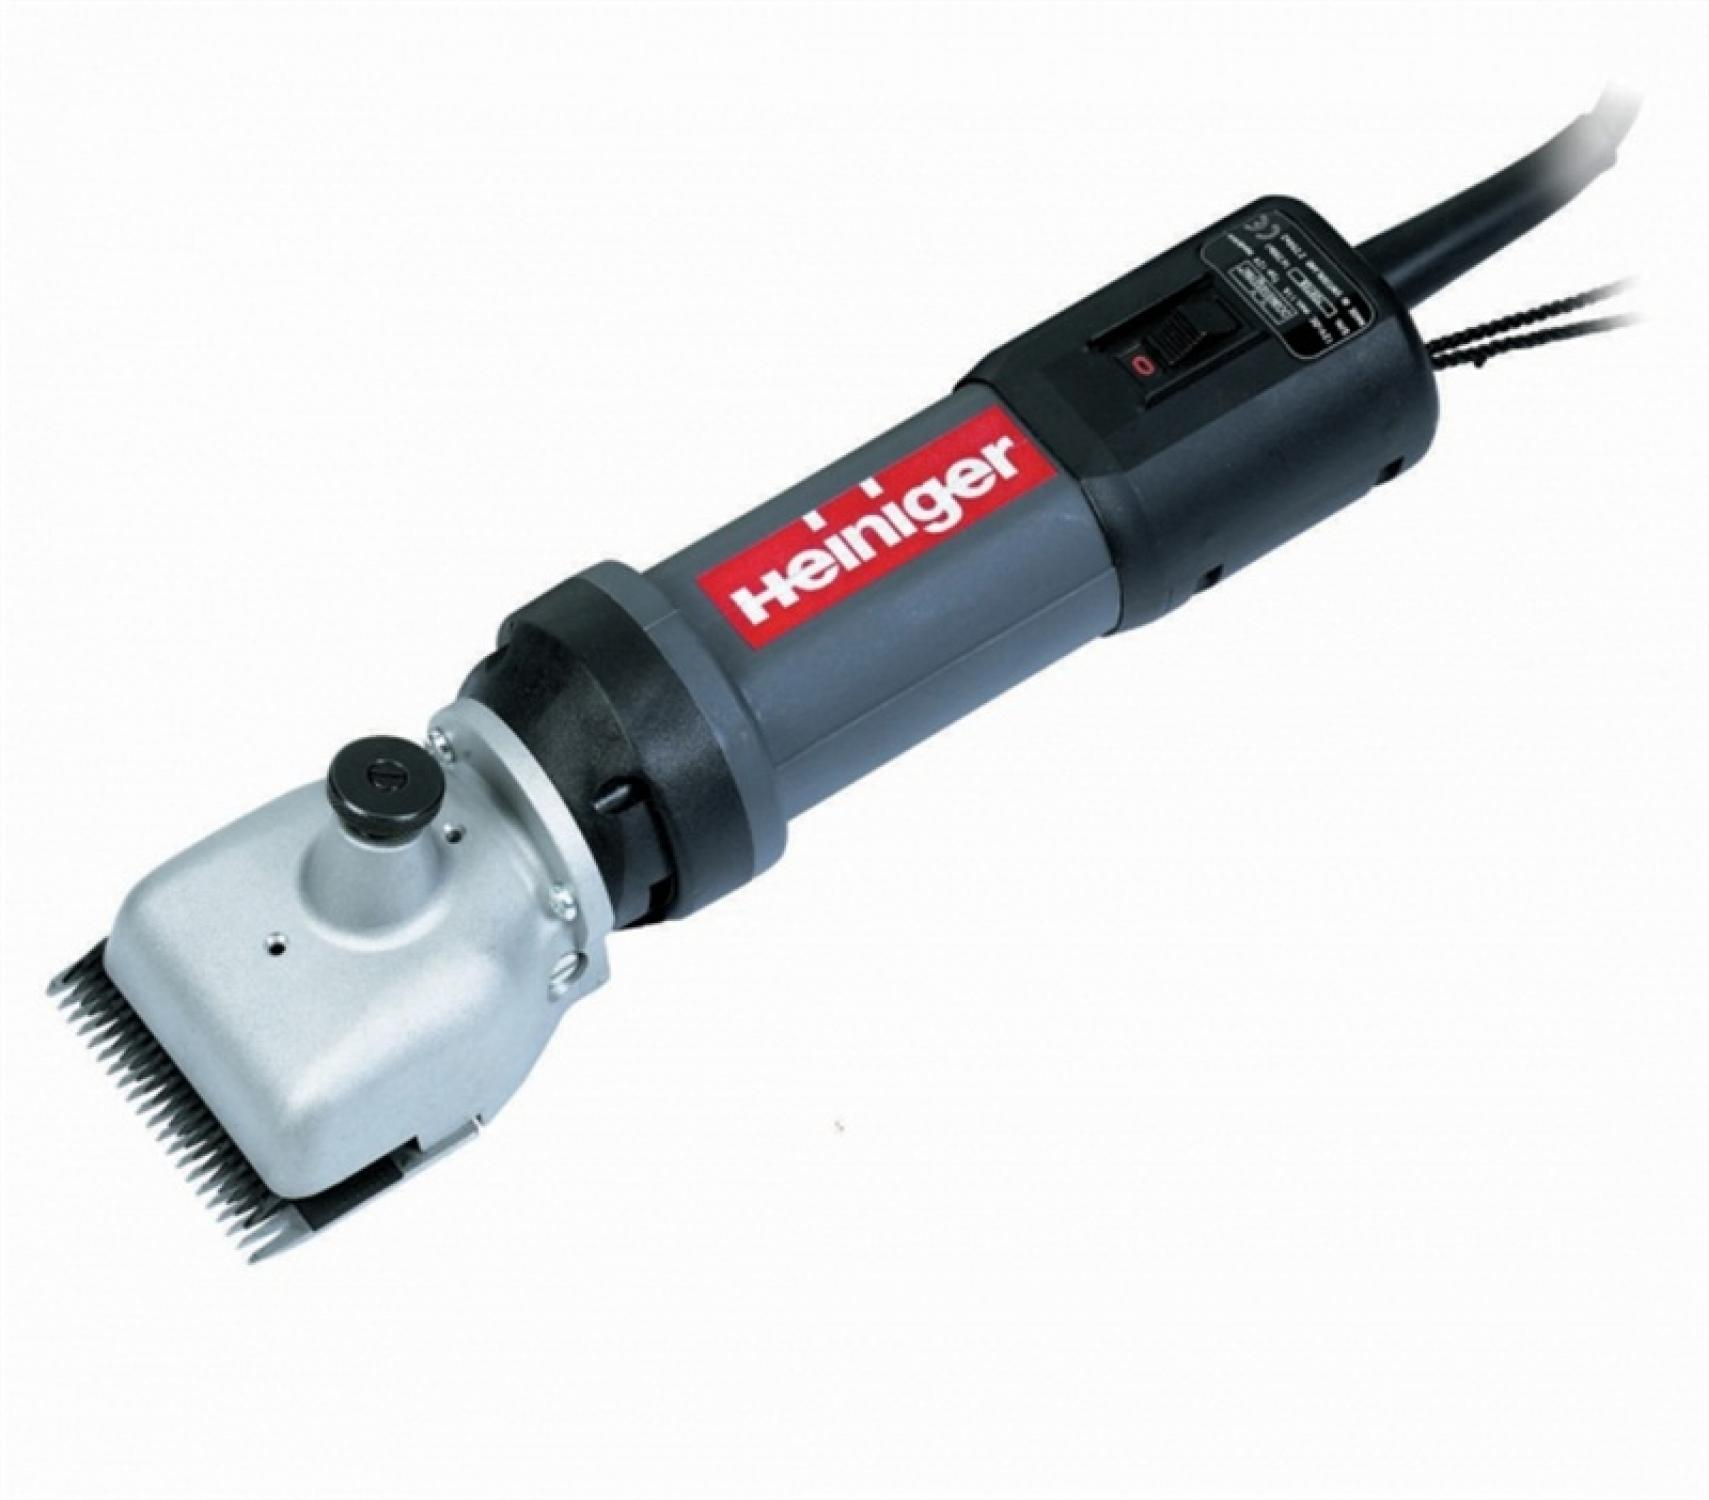 Heiniger Heavy Duty Cattle Clippers